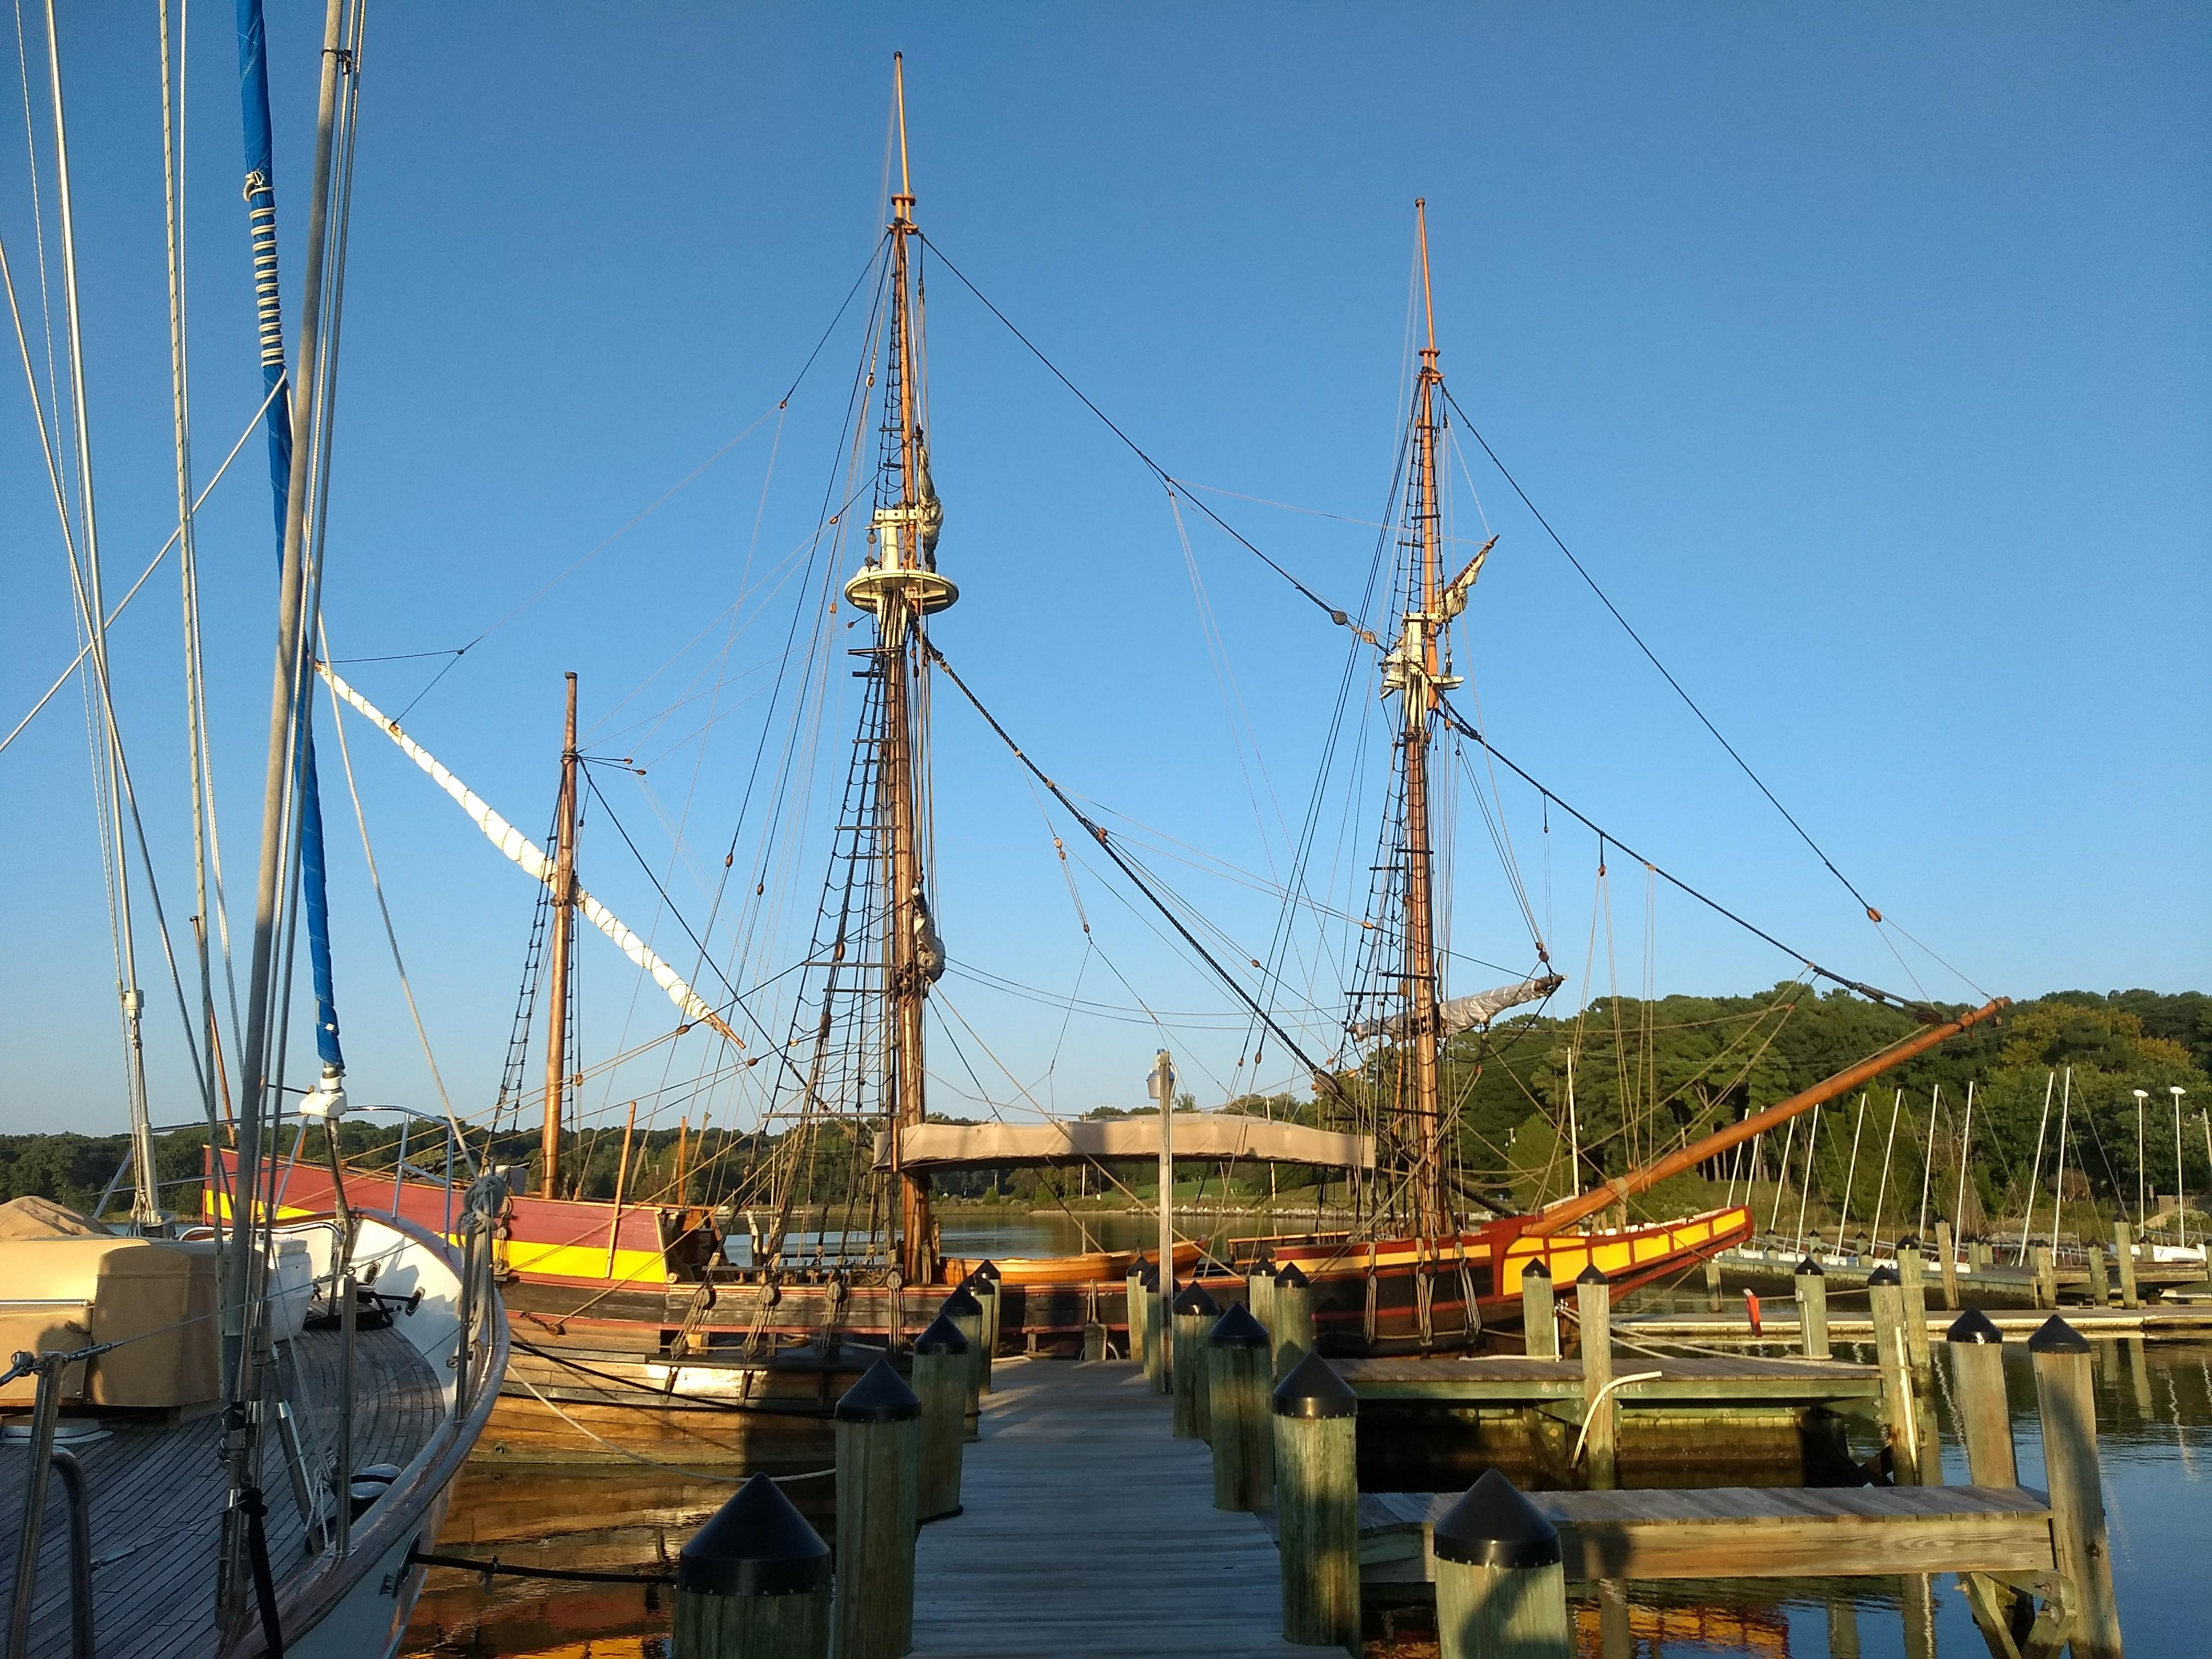 The Dove ship docked at the SMCM Waterfront dock.